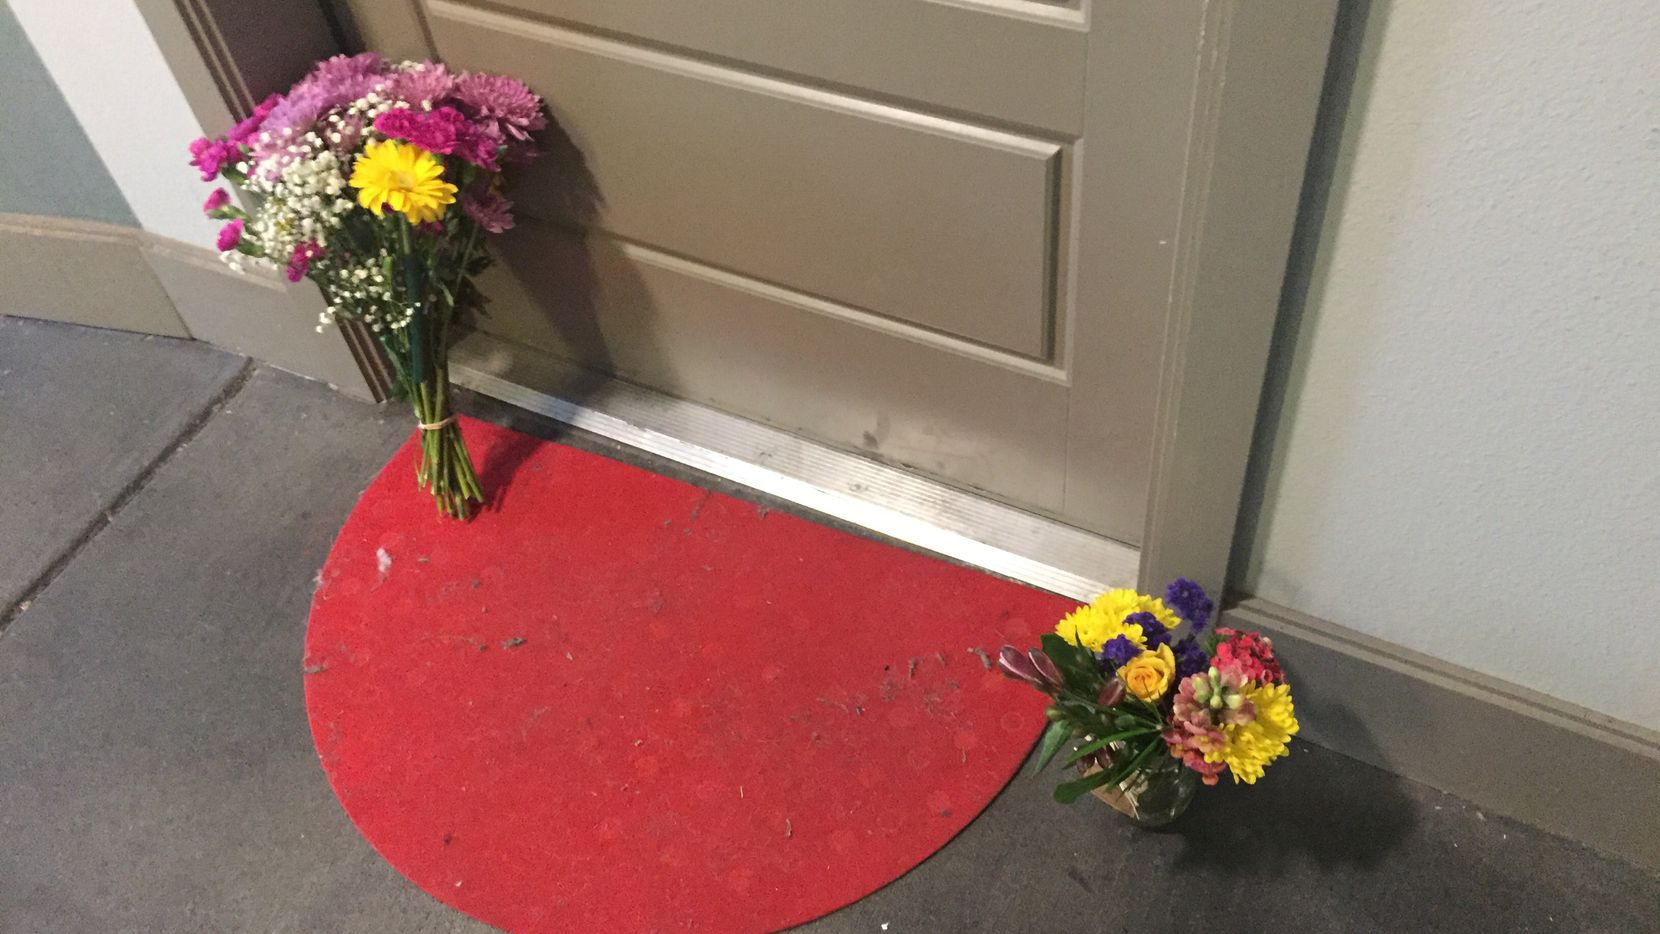 Flowers have ben placed at the front door of Botham Shem Jean, who Dallas police say was shot Thursday night by Amber Guyger, an off-duty police officer who mistakenly thought her apartment was his. Guyger was in uniform.